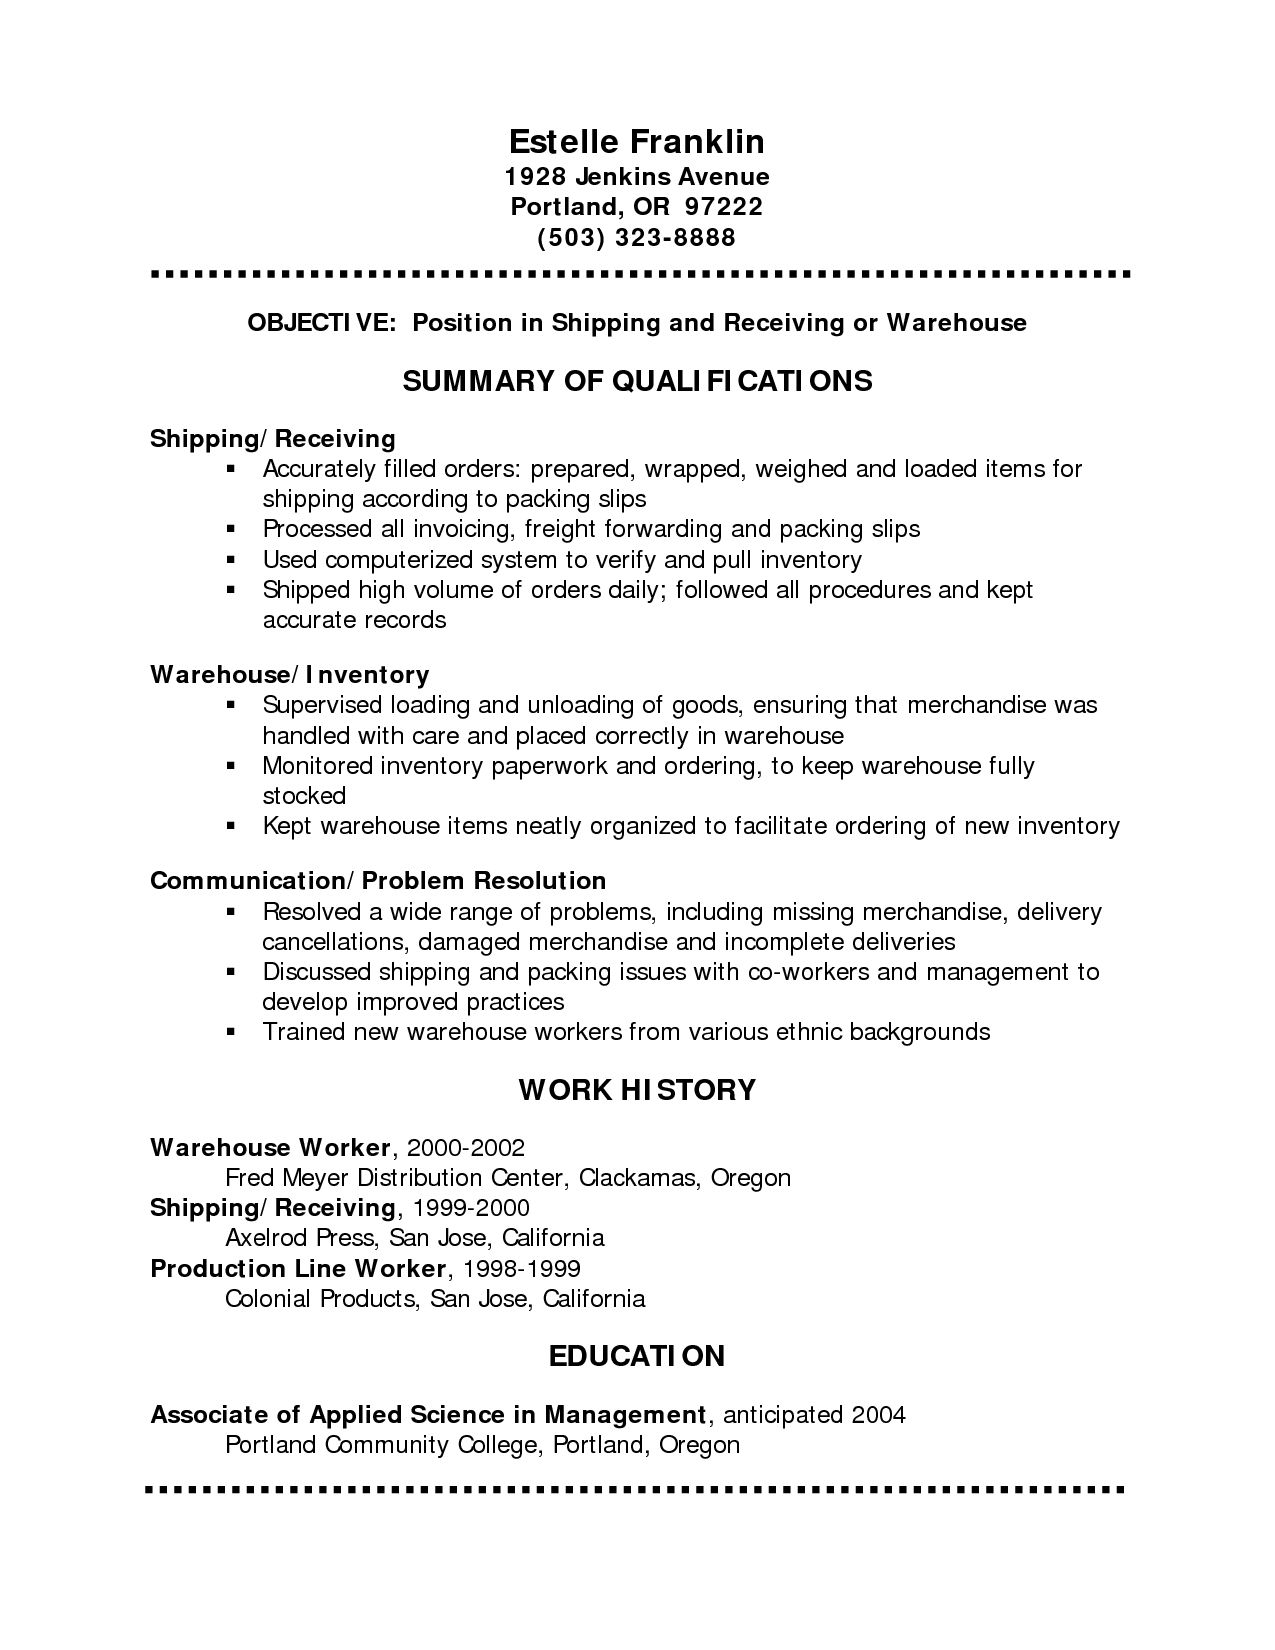 Resume Interests Examples Your Guide The Best Free Resume Templates Good Samples Examples